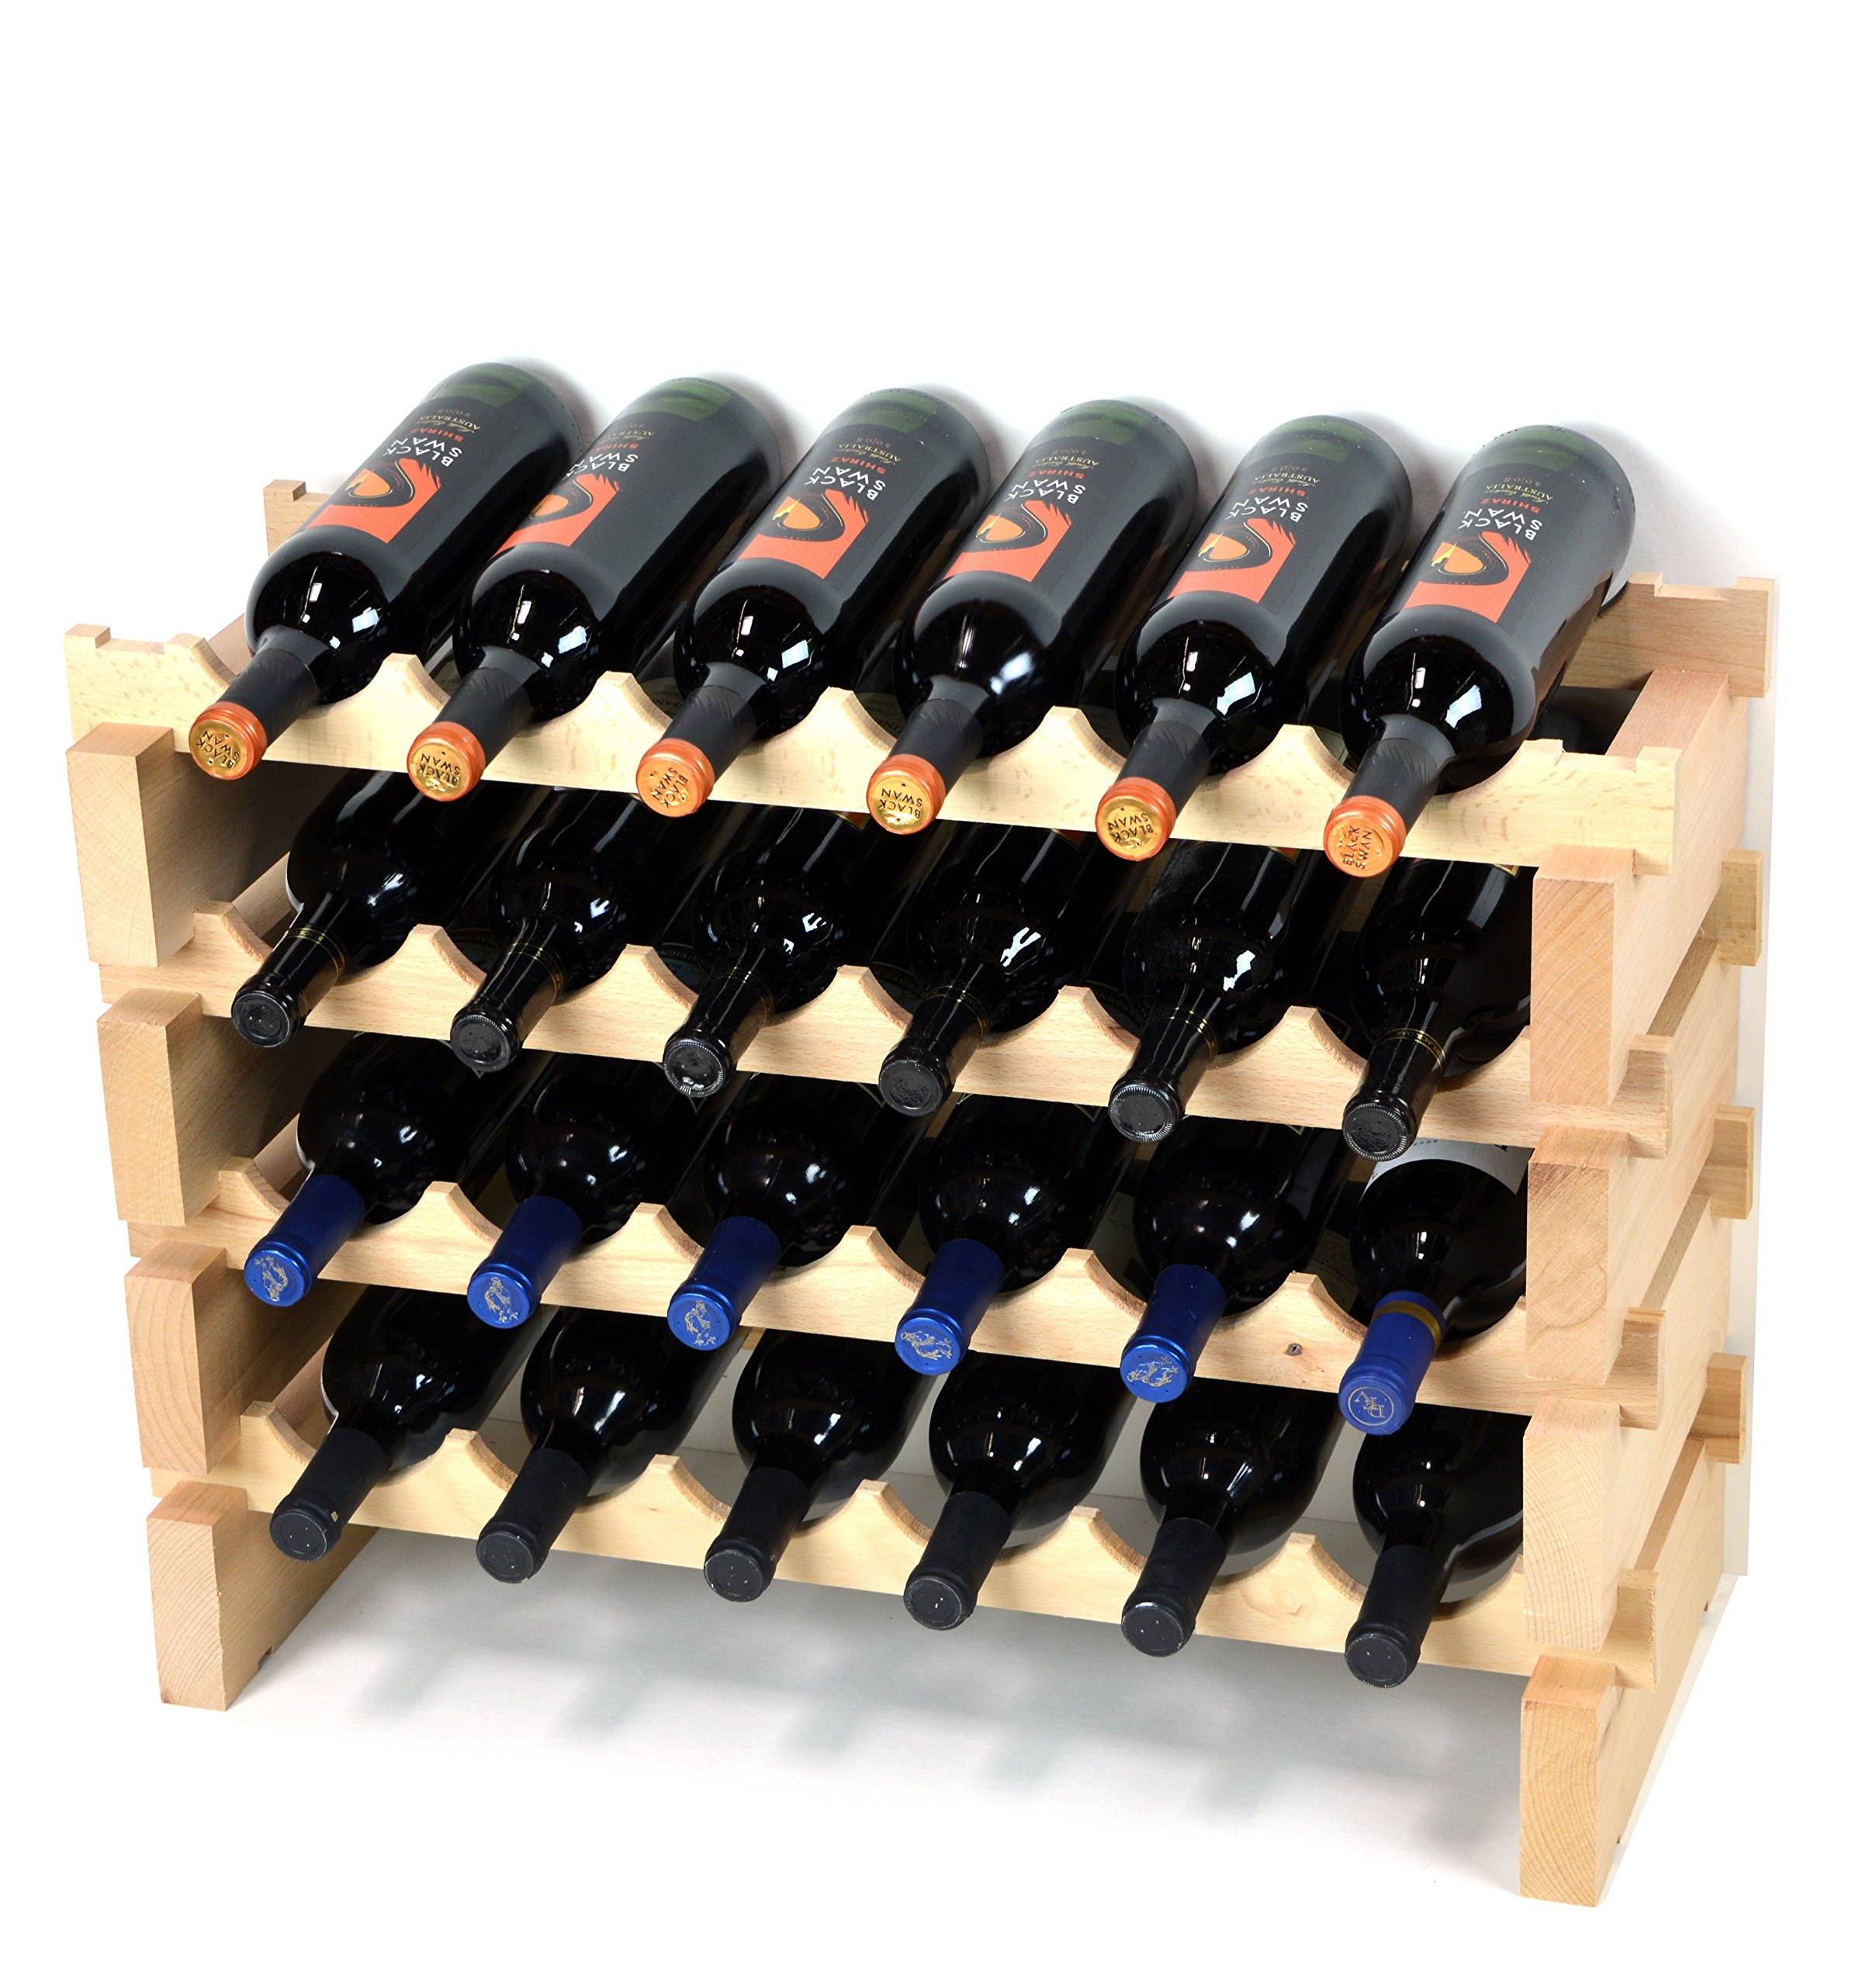 Modular Wine Rack Beechwood 24-72 Bottle Capacity 6 Bottles Across up to 12 Rows Newest Improved Model (24 Bottles - 4 Rows)